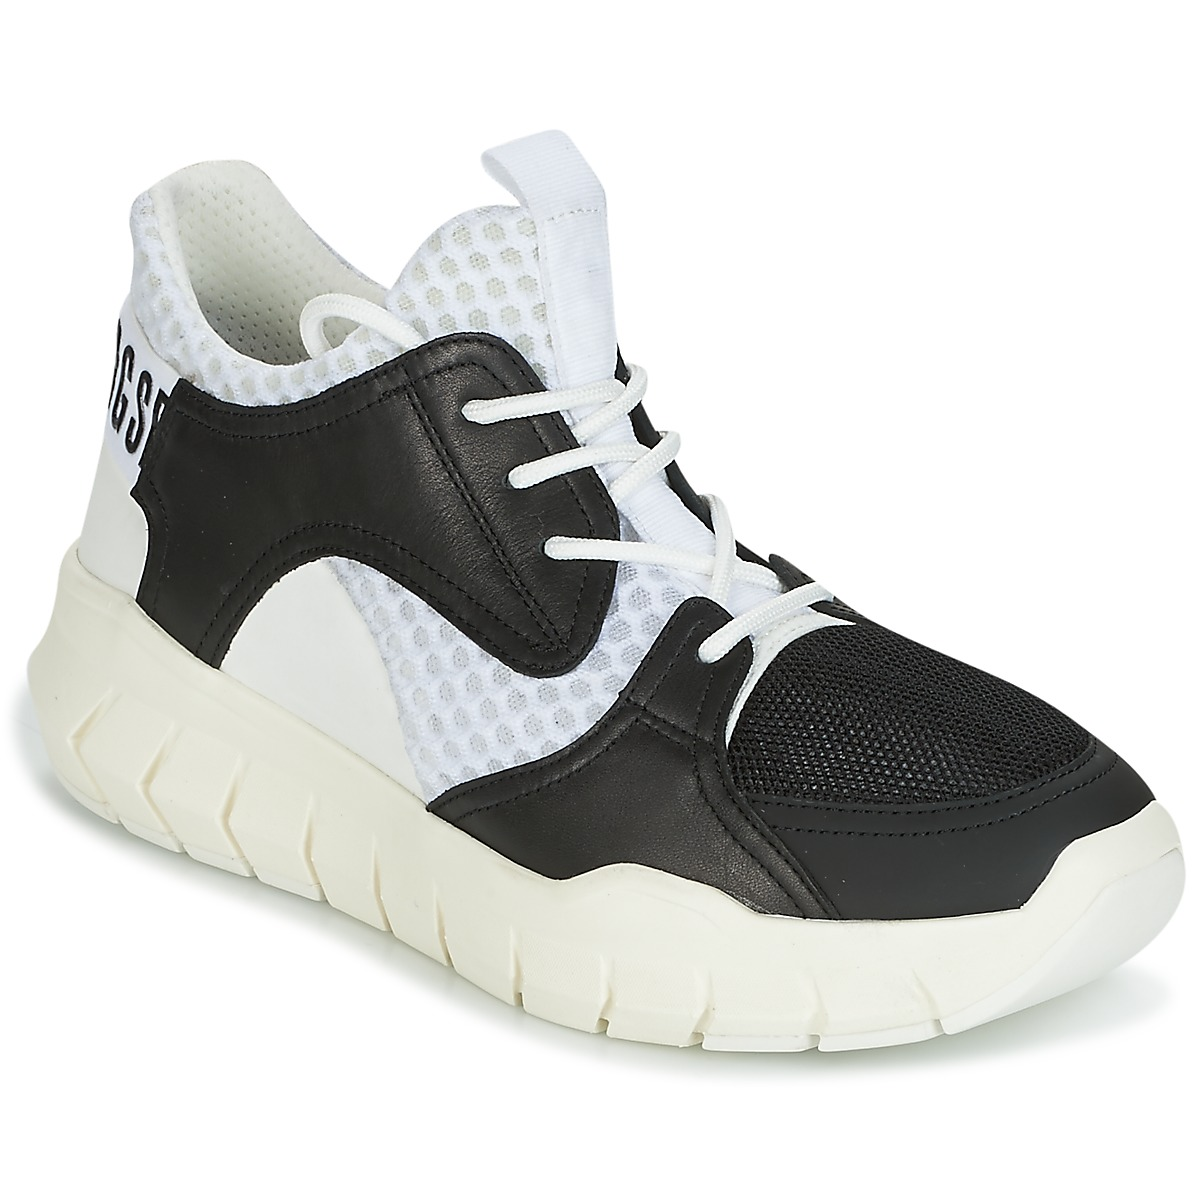 Sneakers Bikkembergs  FIGHTER 2022 LEATHER